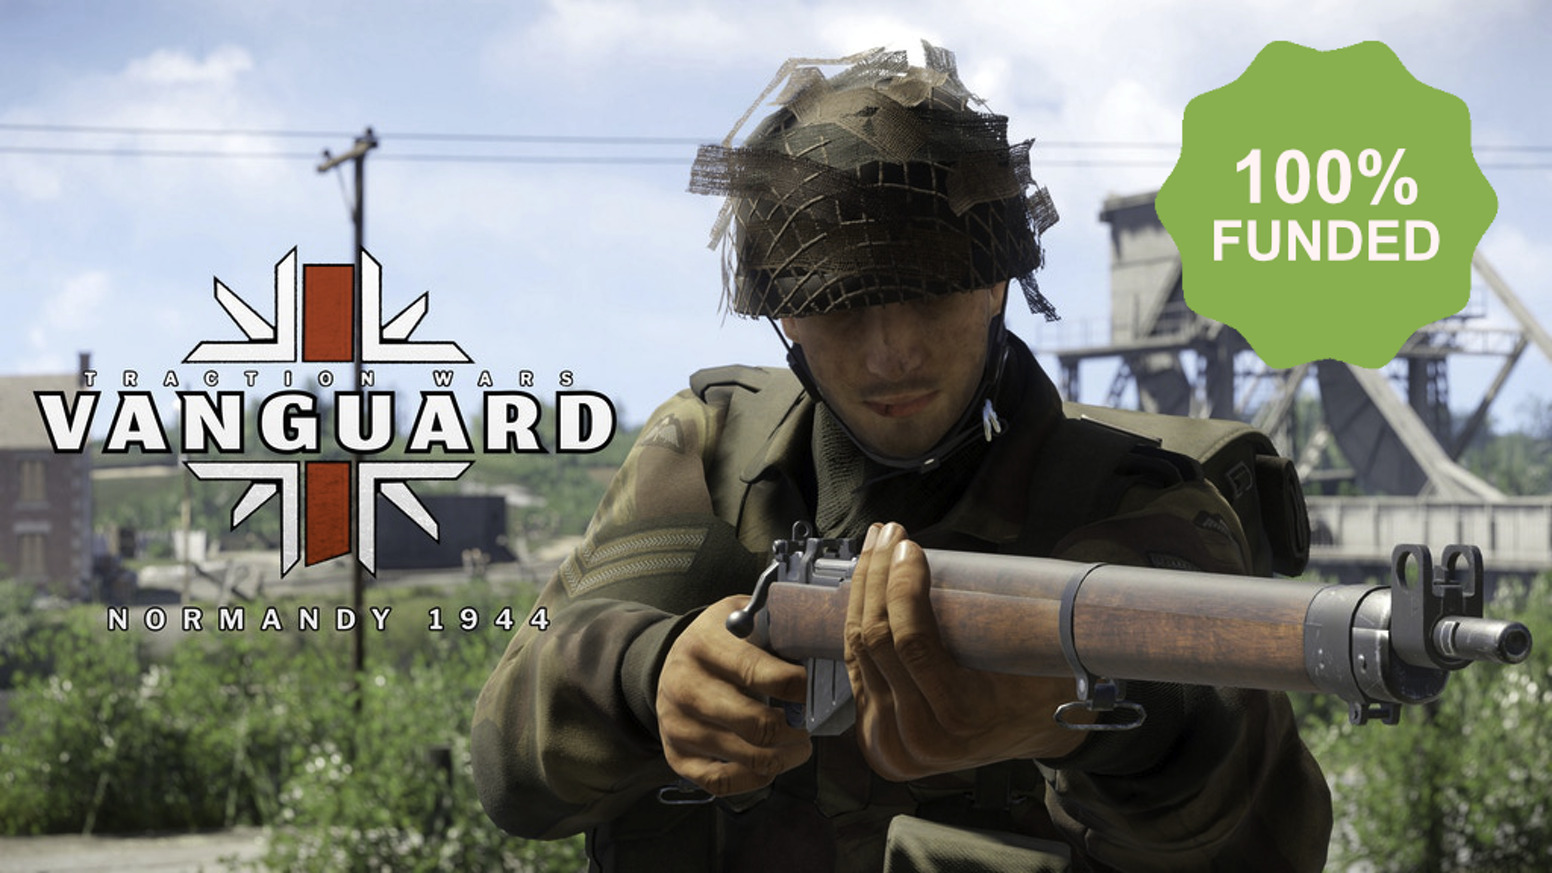 In Vanguard: Normandy 1944 players fight to survive in hardcore multiplayer combat for historic D-Day objectives on real battlefields. Now available on Steam Early Access.